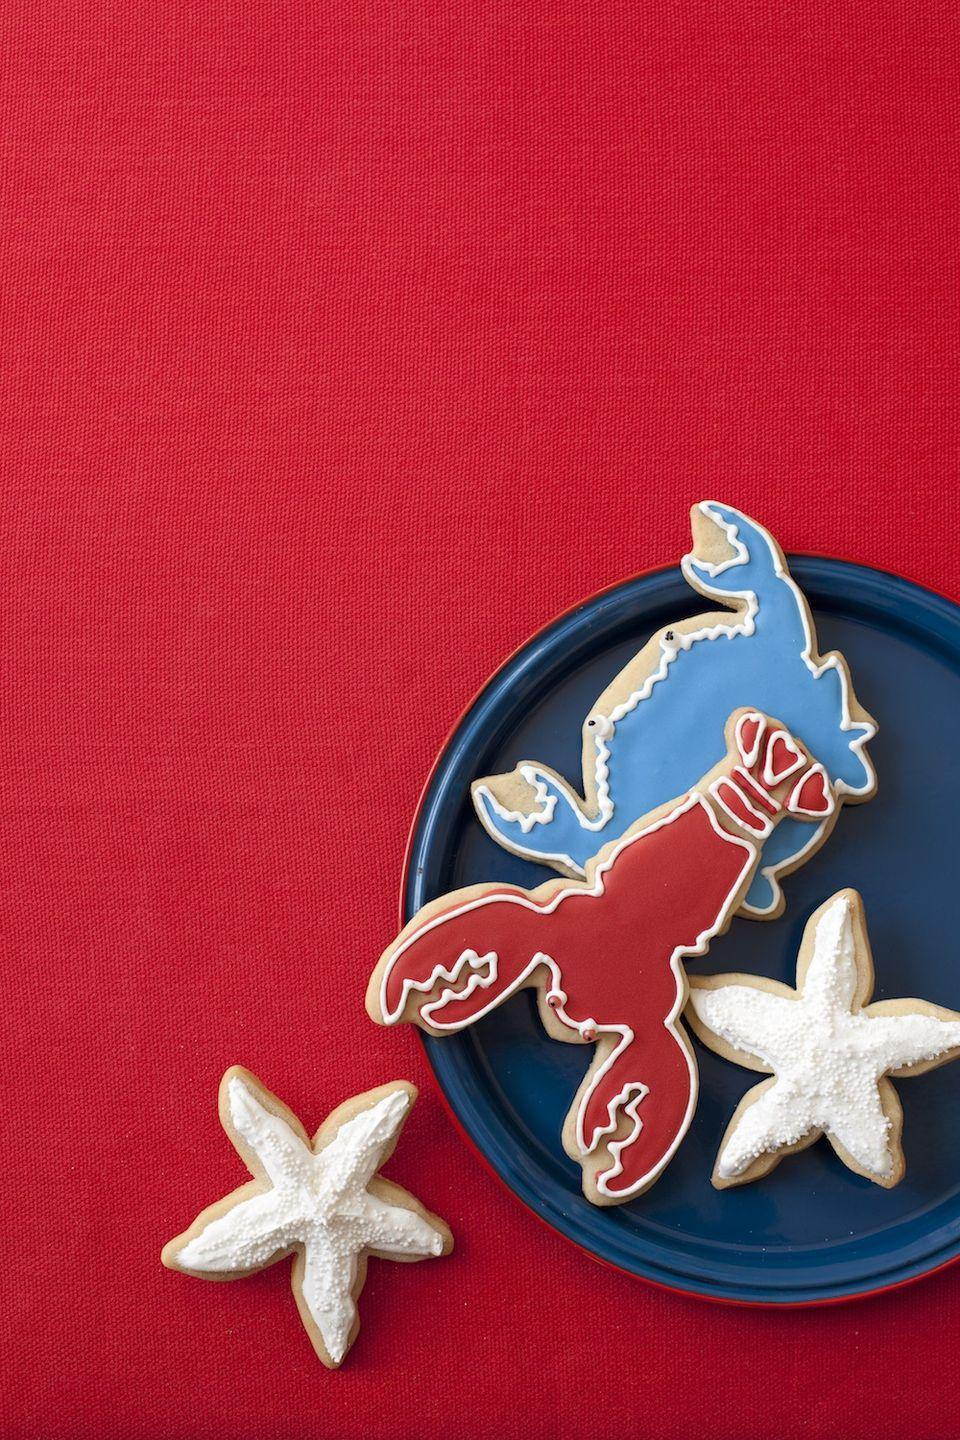 """<p>These sugar cookies just scream summer. The red, white and blue icing really drives the message home. </p><p><em><strong><a href=""""https://www.womansday.com/food-recipes/food-drinks/recipes/a11012/seaside-cookies-recipe-122376/"""" rel=""""nofollow noopener"""" target=""""_blank"""" data-ylk=""""slk:Get the Seaside Cookies recipe."""" class=""""link rapid-noclick-resp"""">Get the Seaside Cookies <em>recipe</em>. </a></strong></em></p>"""